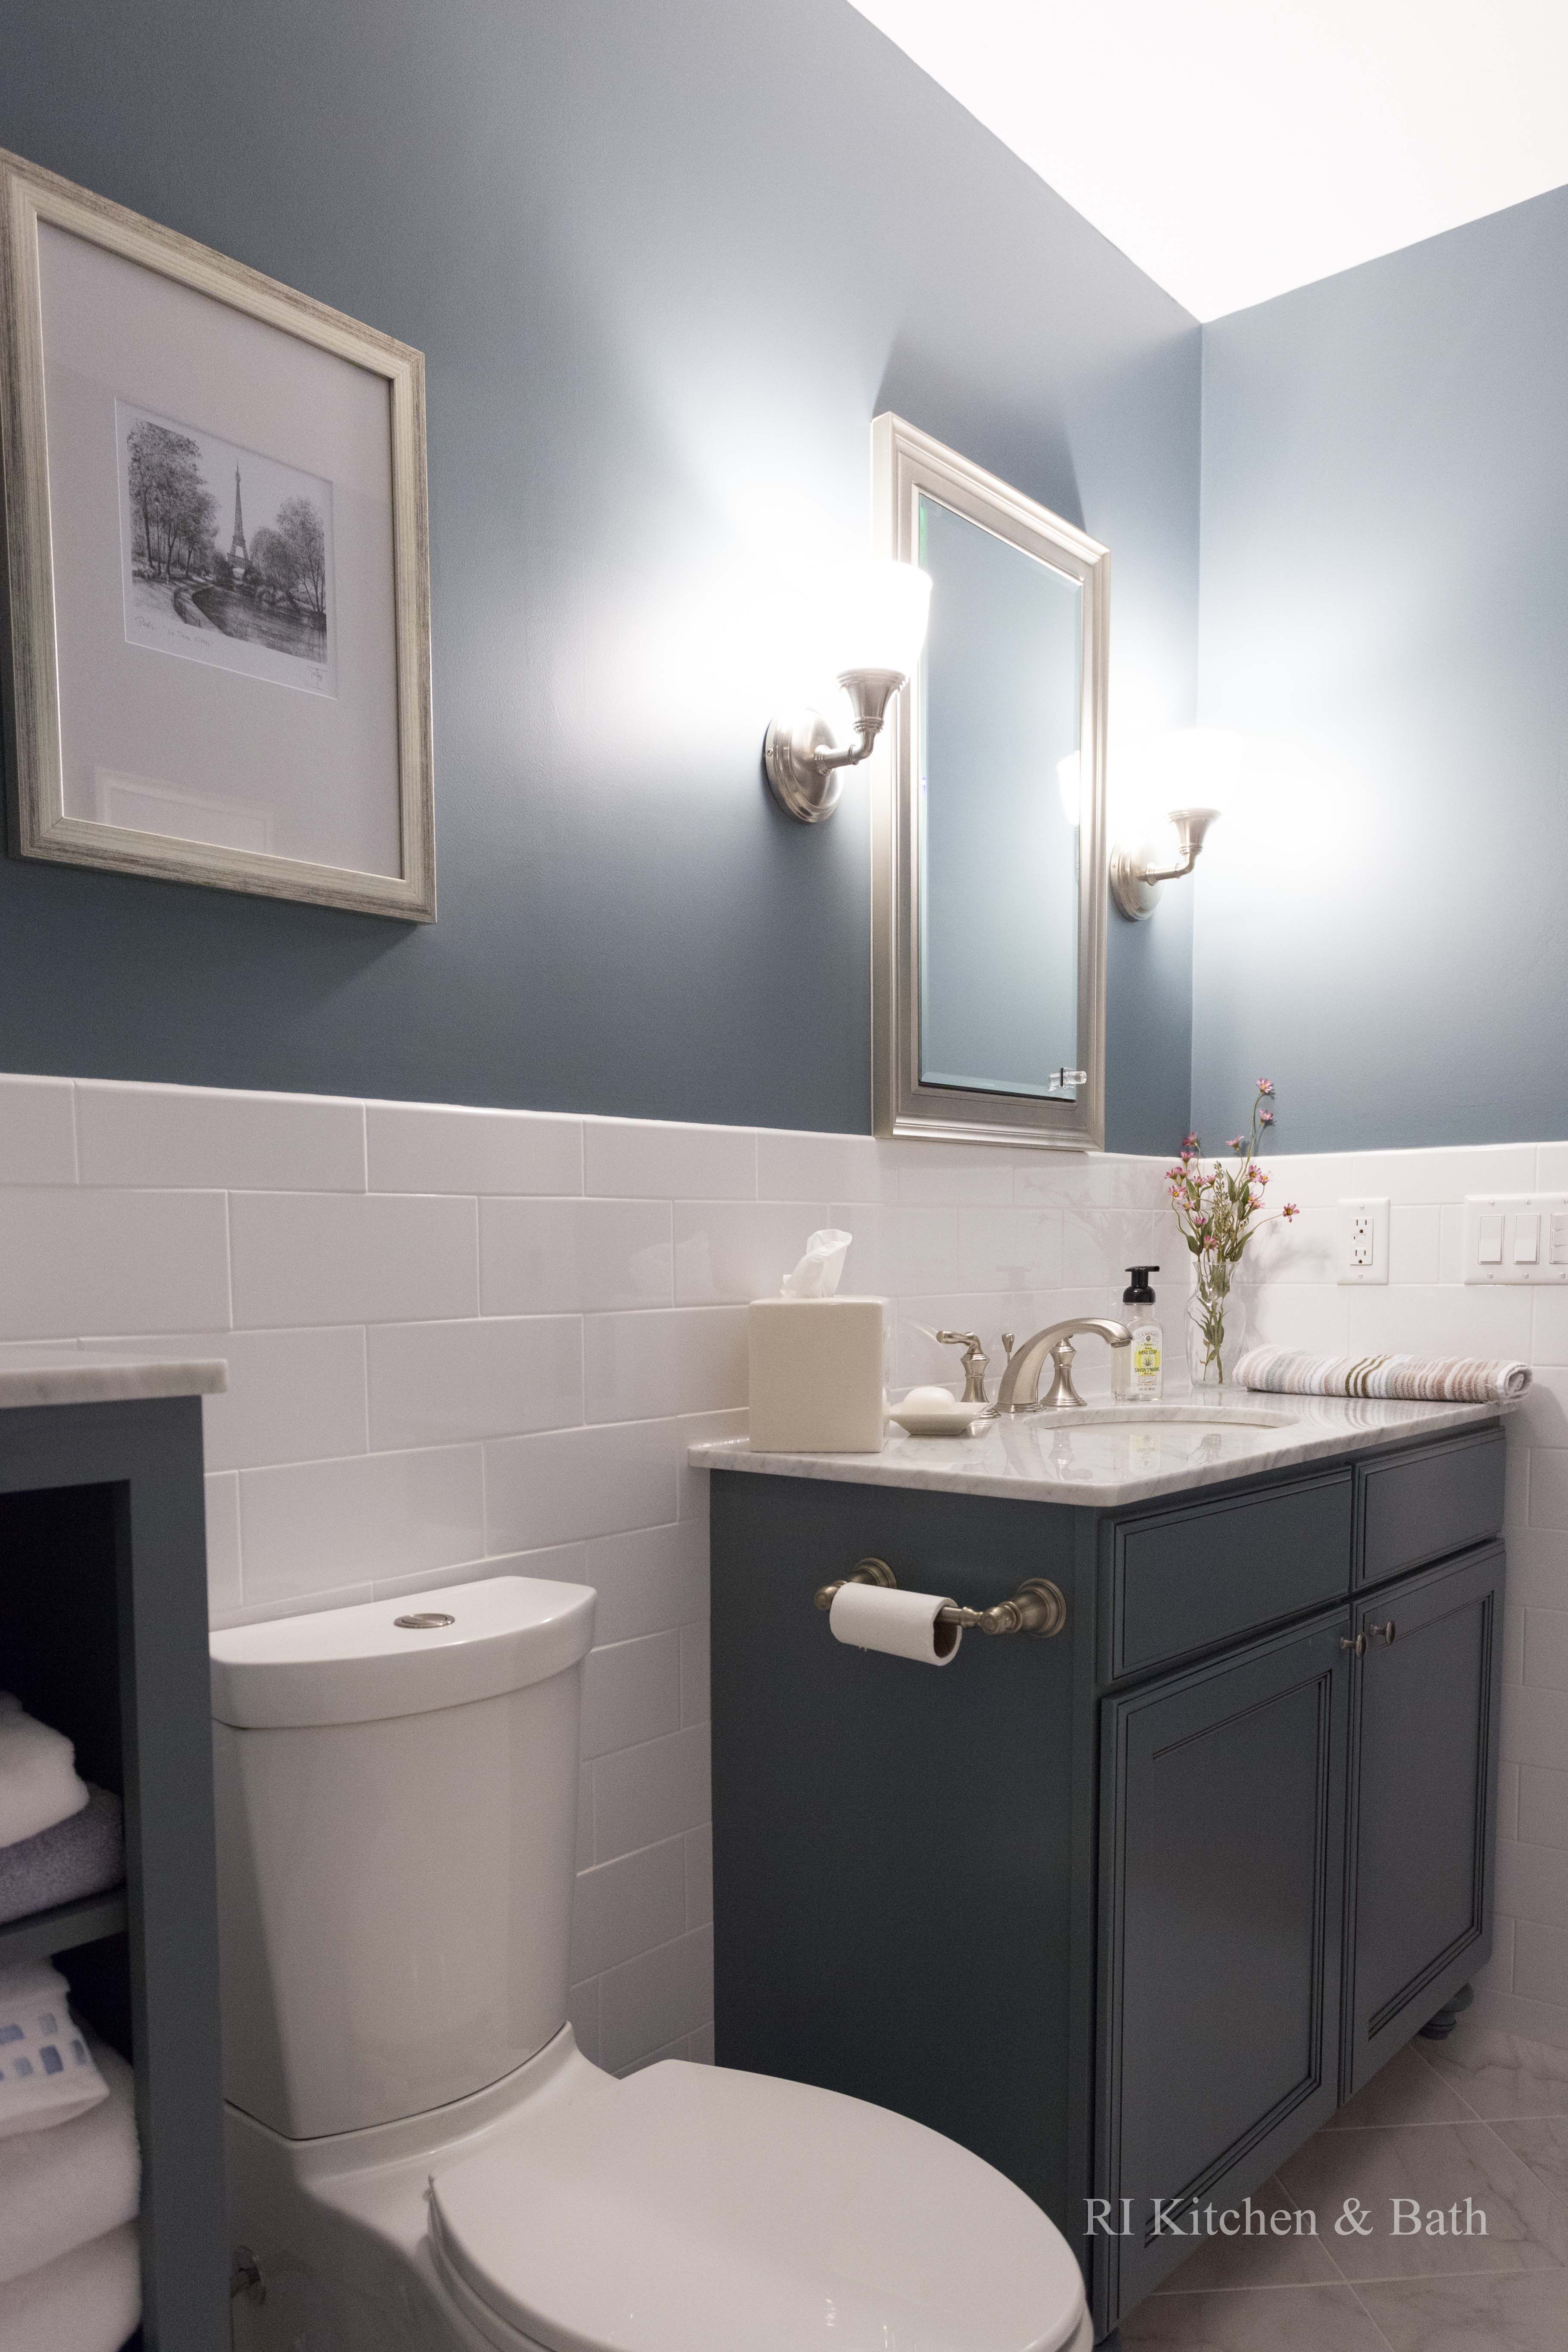 switches in line with tile, frees up sightlines | Bathroom ...